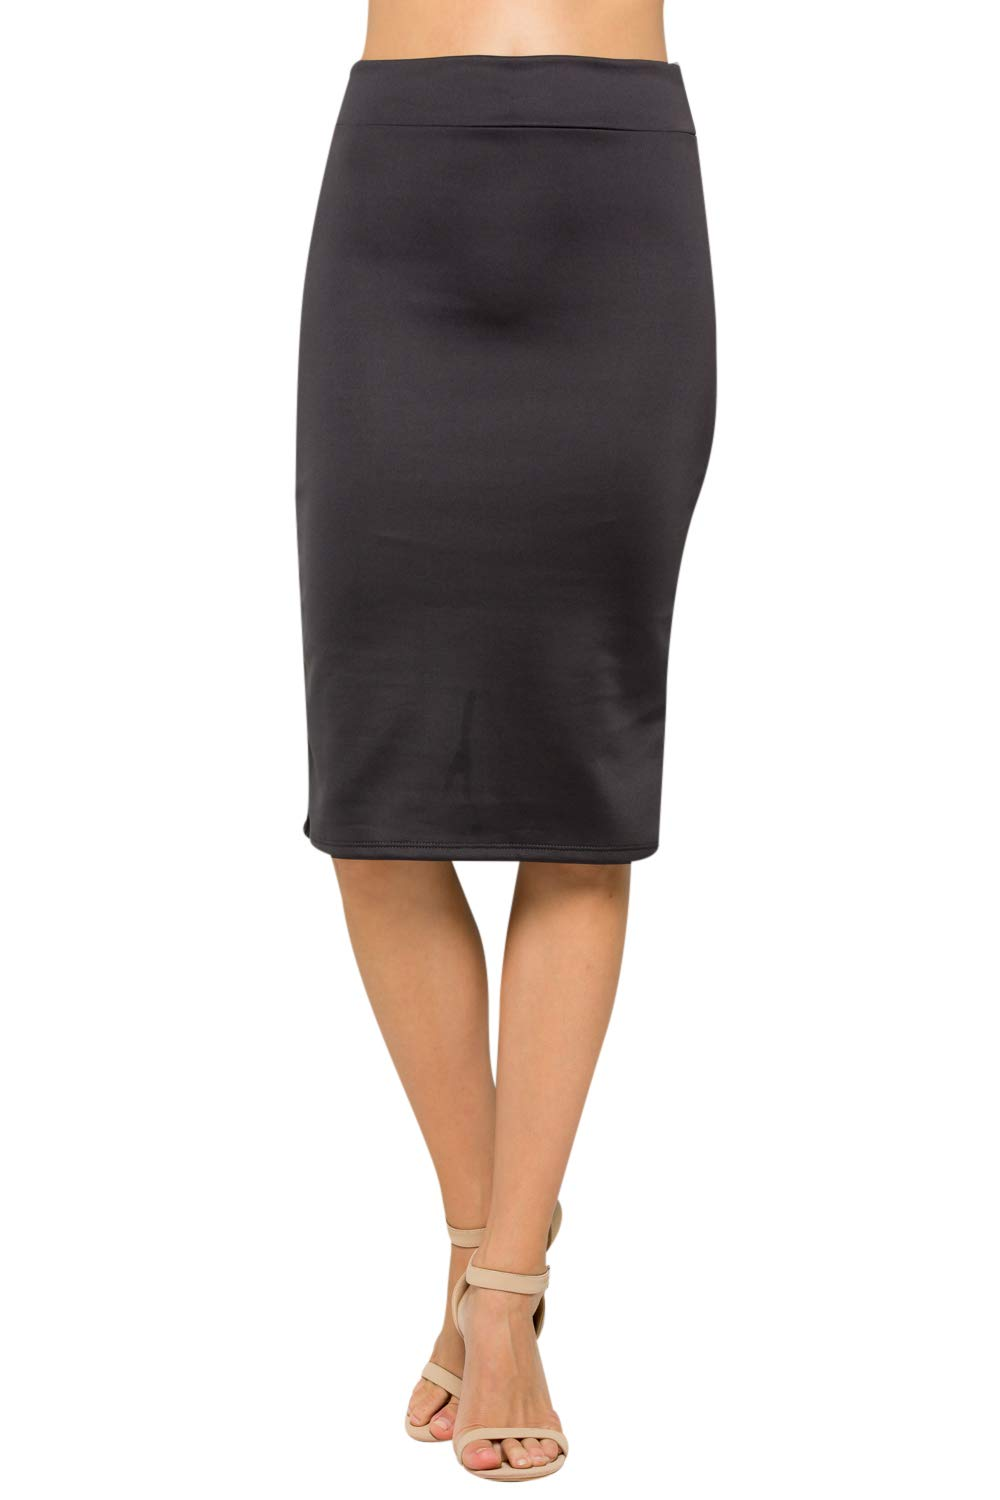 Junky Closet Women's High Waist Stretchy Office Pencil Skirt (Made in USA) (Large, S2936QQBU Charcoal) by Junky Closet